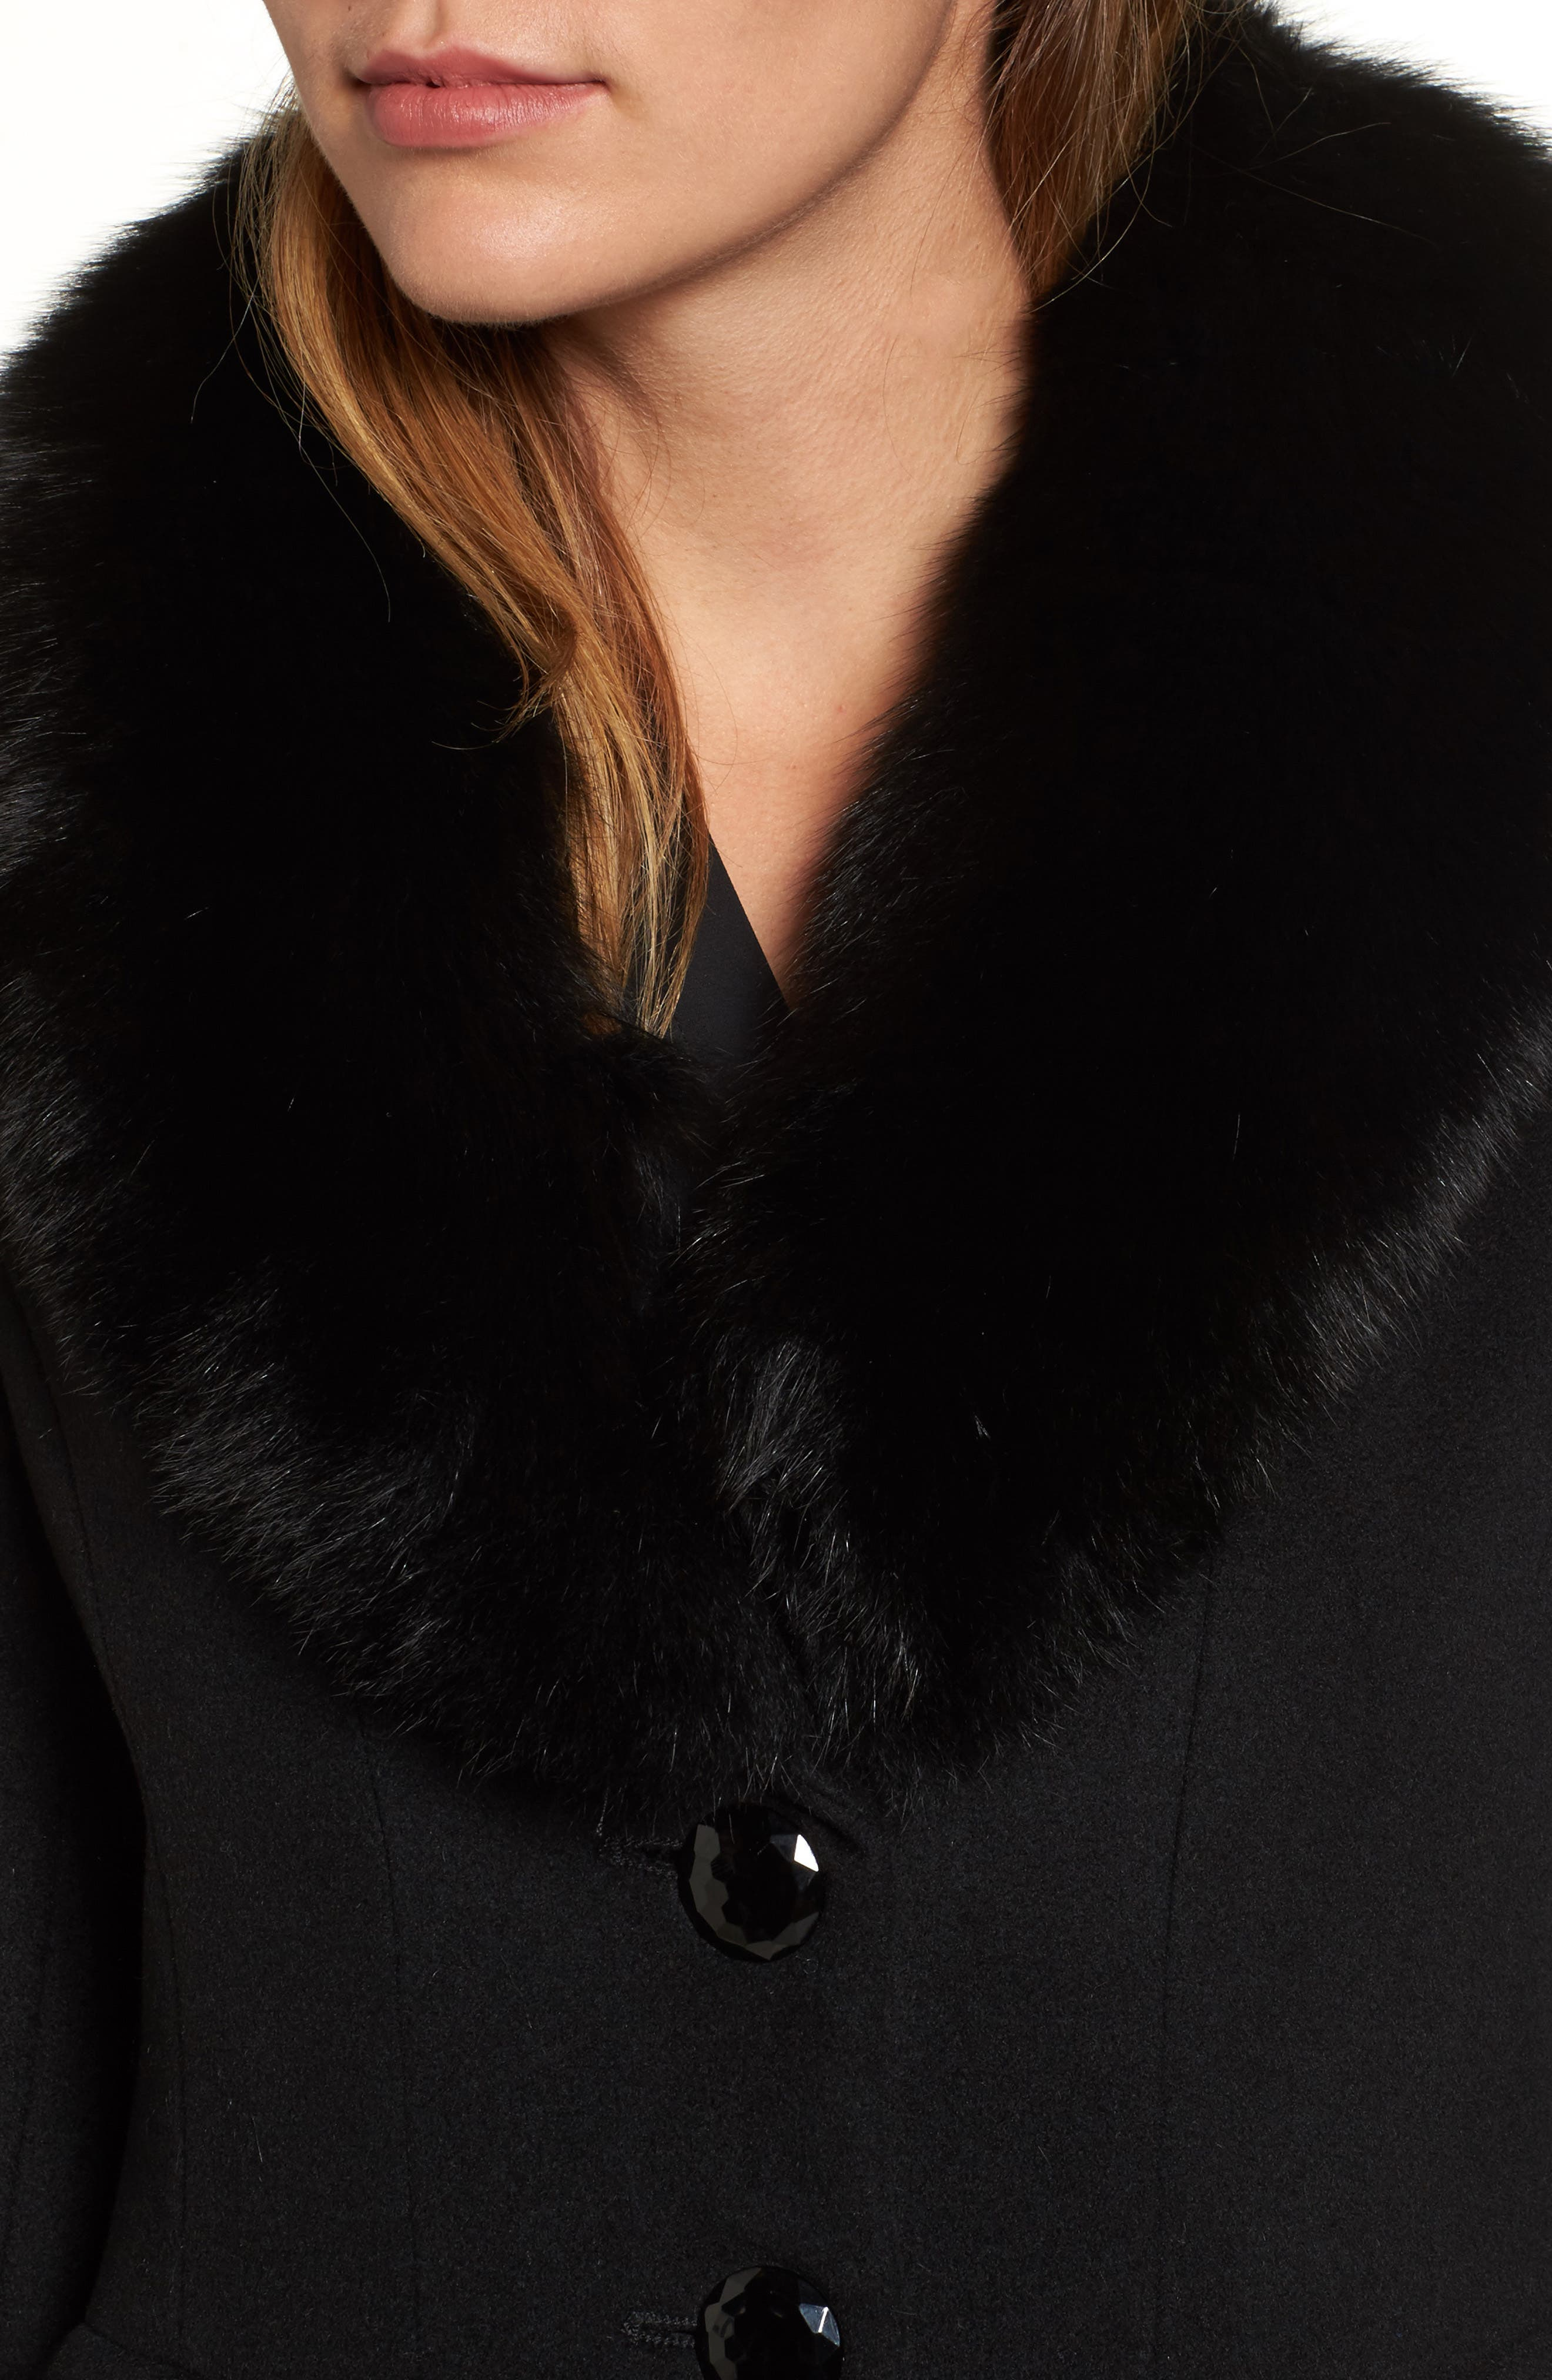 Couture Long Wool Blend Coat with Genuine Fox Fur Collar,                             Alternate thumbnail 4, color,                             001